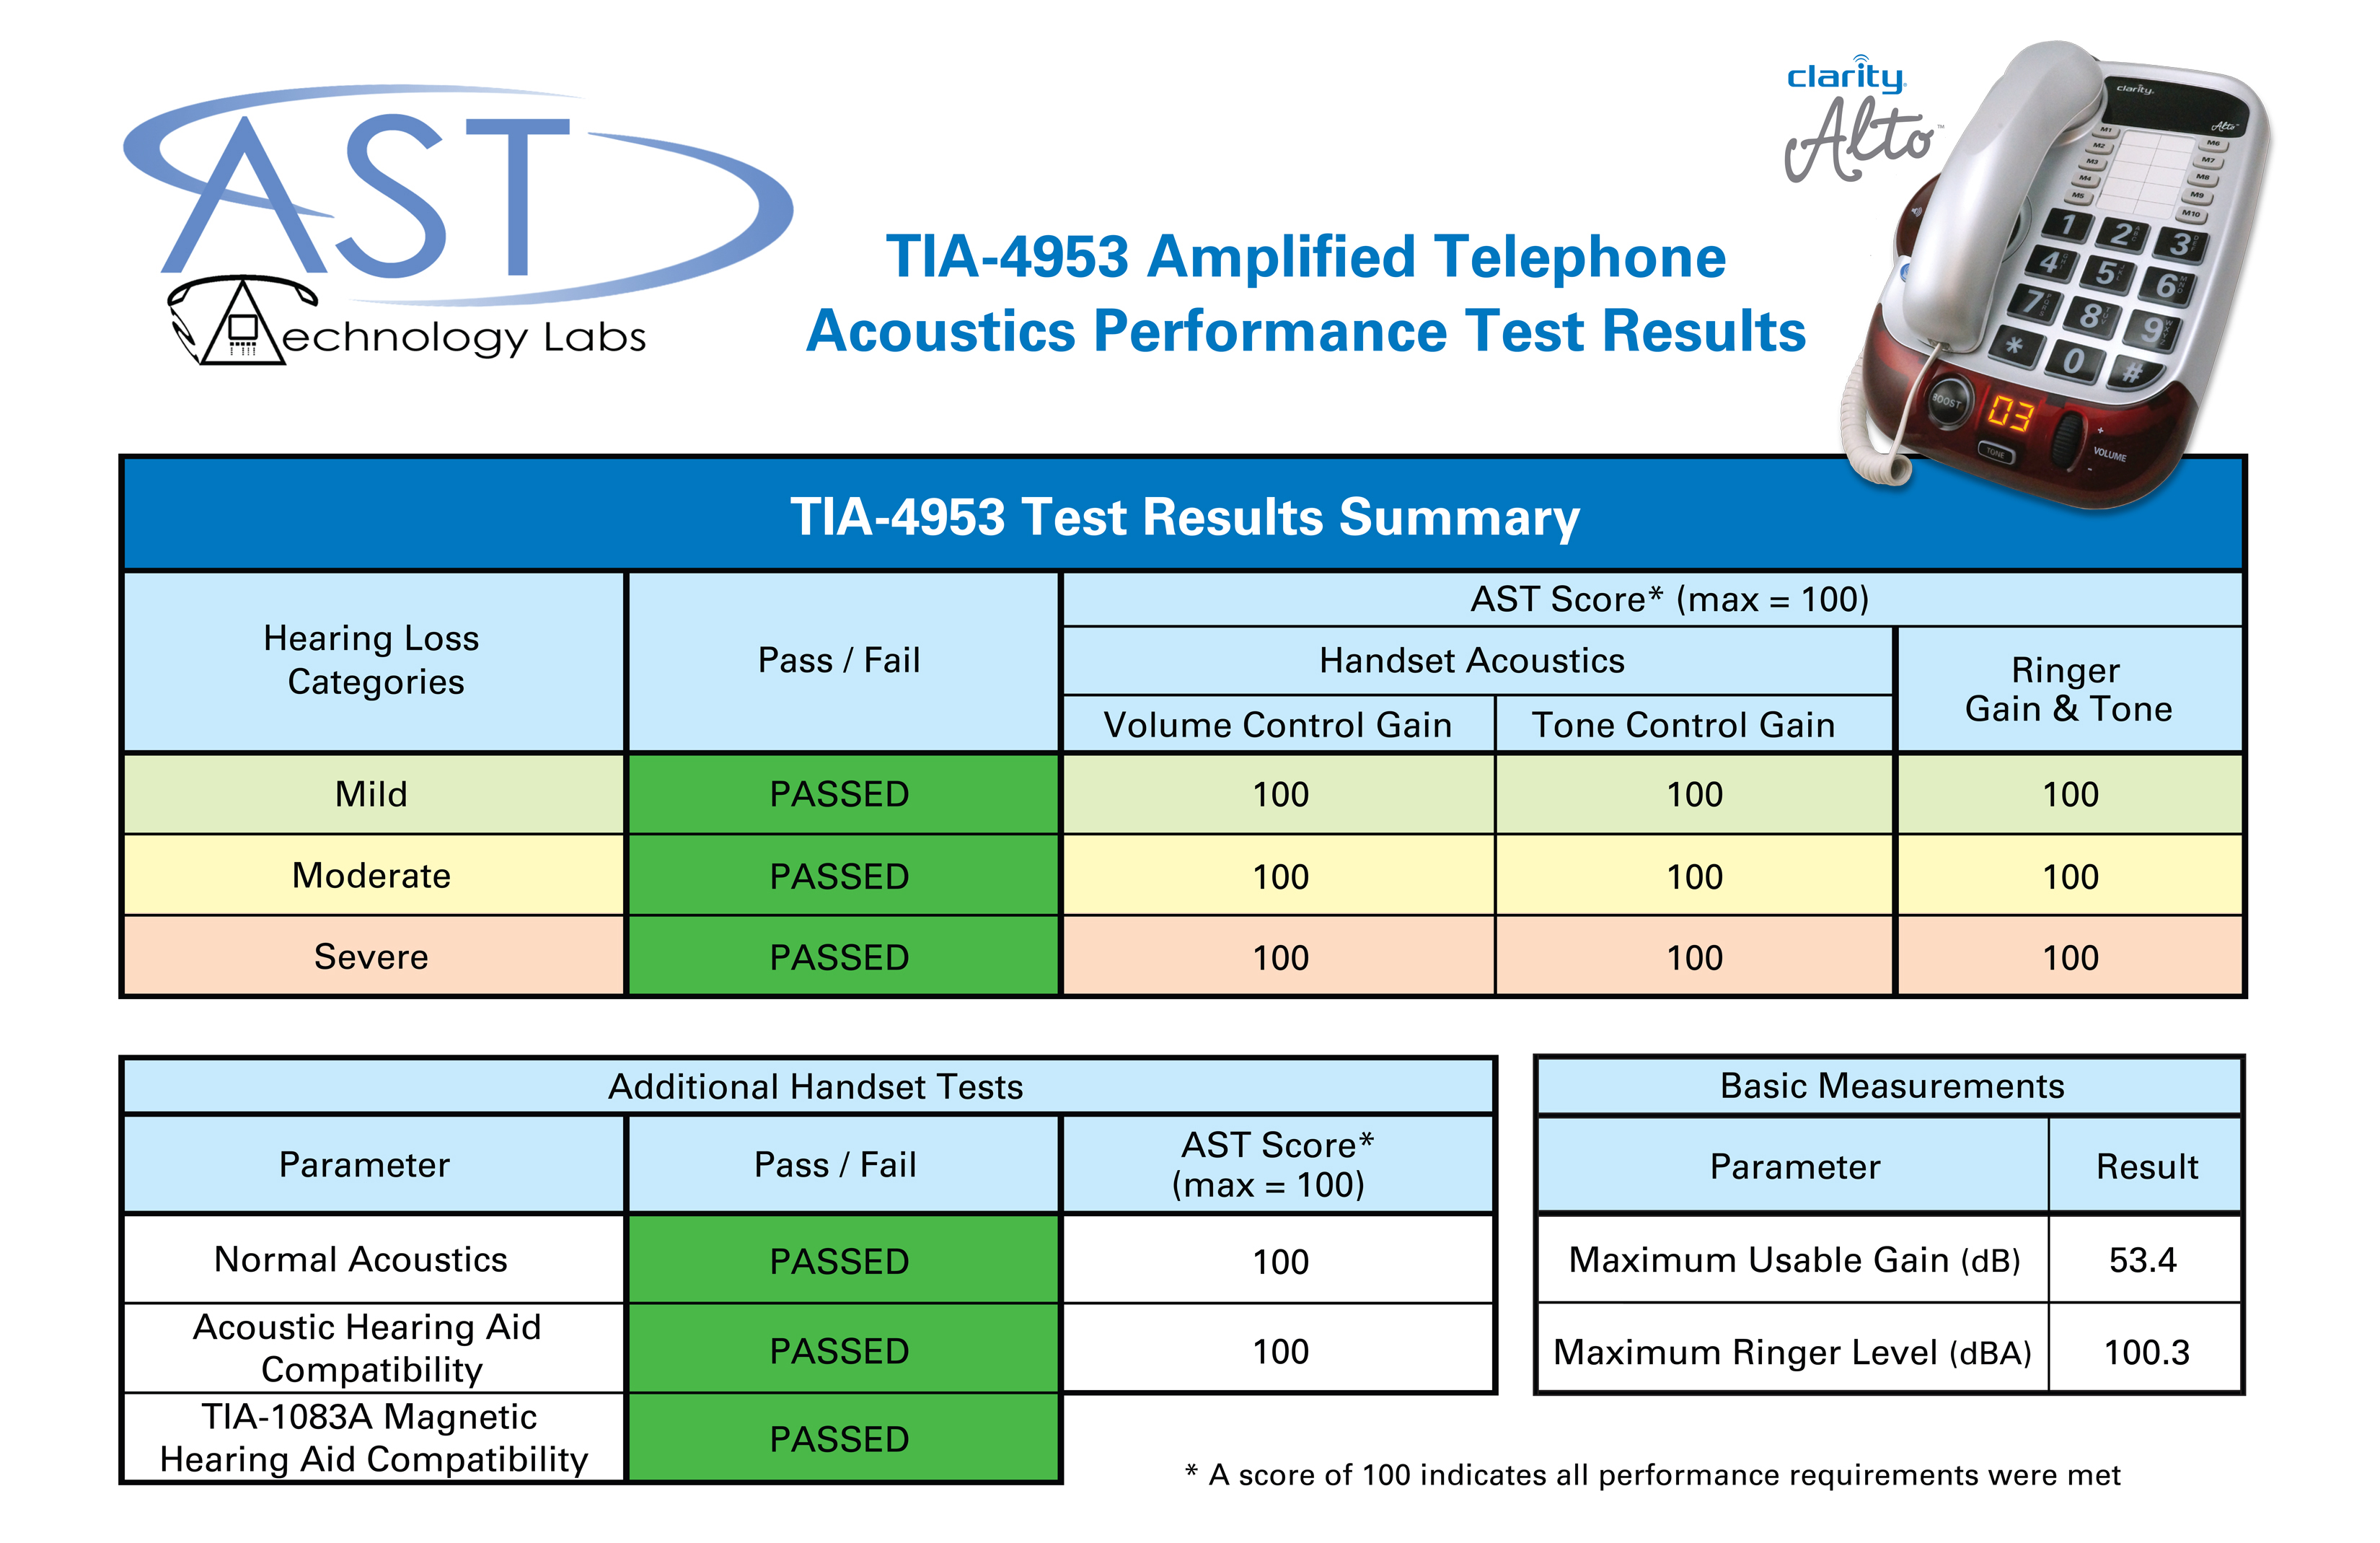 Chart from AST Labs showing the TIA-4953 test results for the Clarity Alto. The chart shows the phone passed in all three categories (Mild, Moderate, Severe) with a 100% score in Tone Control, Volume Control, and Ringer Gain & Tone. The handset passed with 100% for both normal acoustics and with hearing aid users. The Maximum Useable Gain tested at 53.4 decibels and the ringer tested at 100.3 decibels.